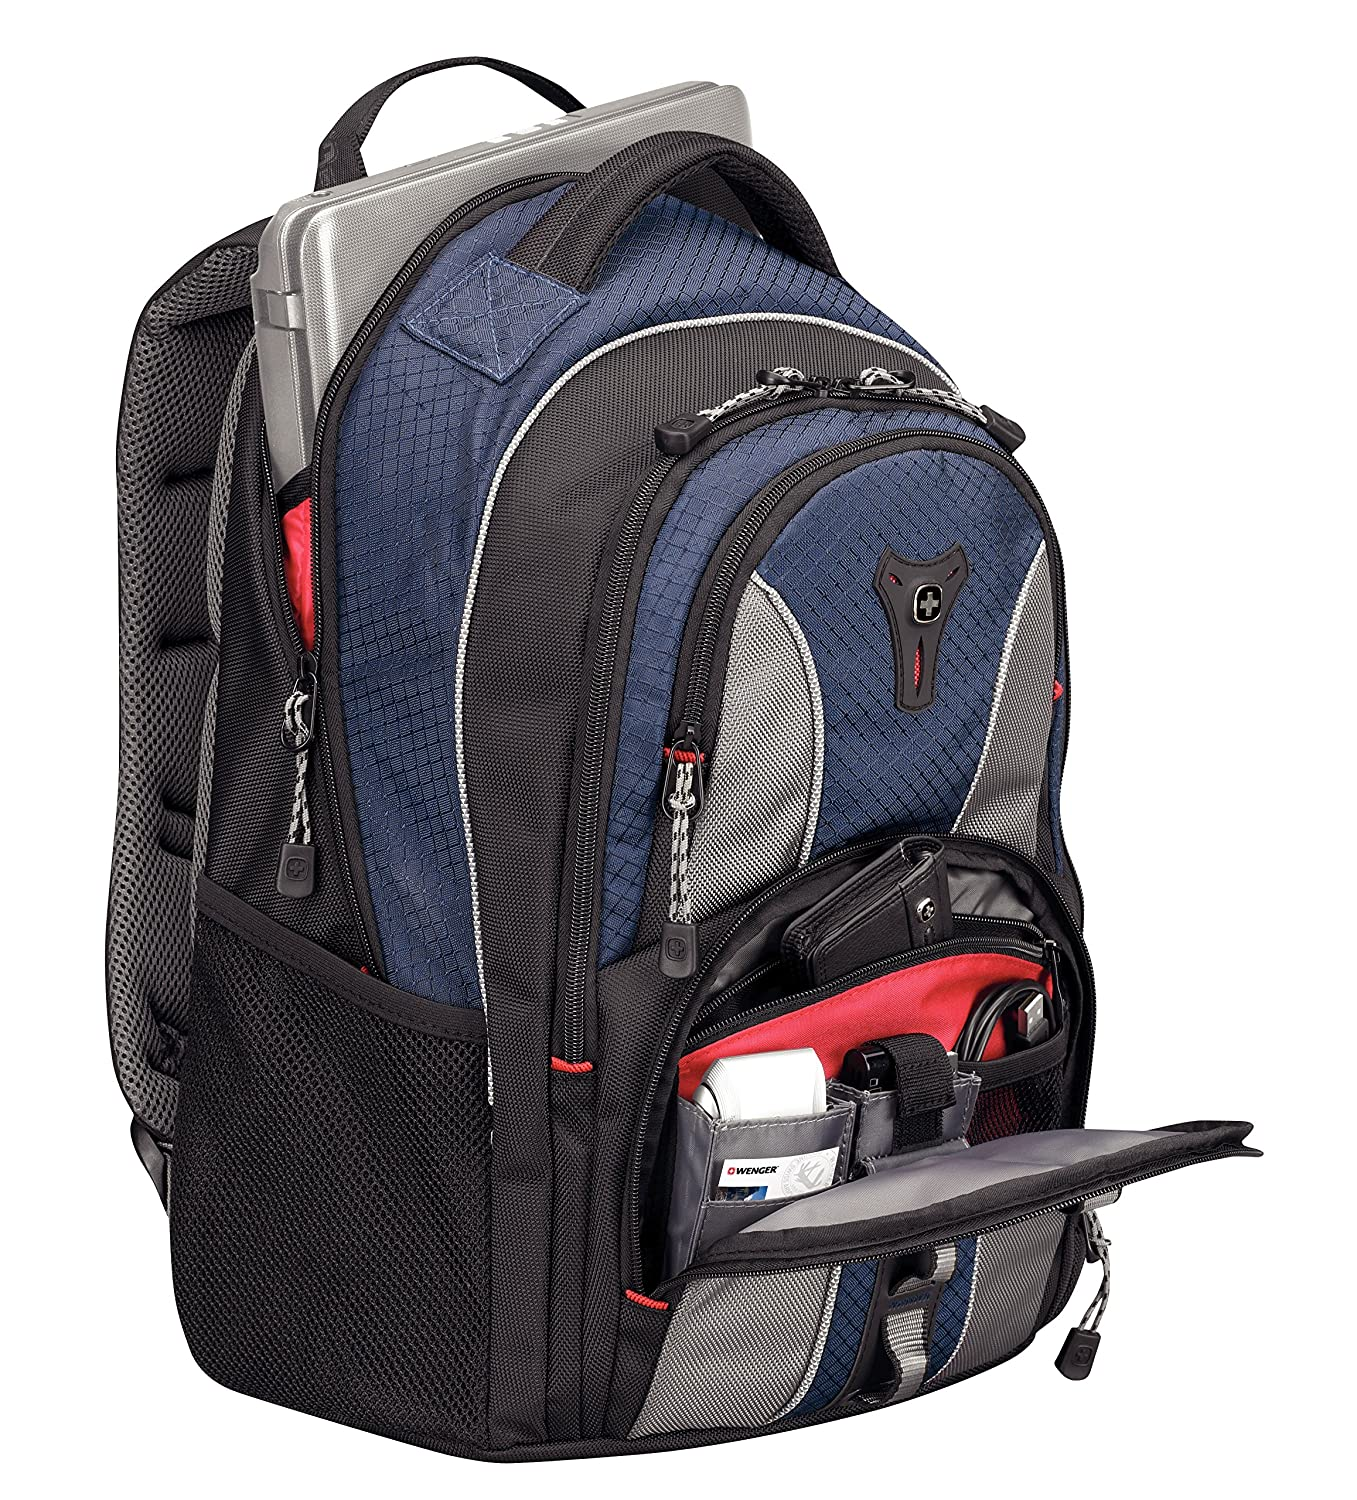 Amazon.com: SwissGear Cobalt Notebook carrying backpack, 15.6